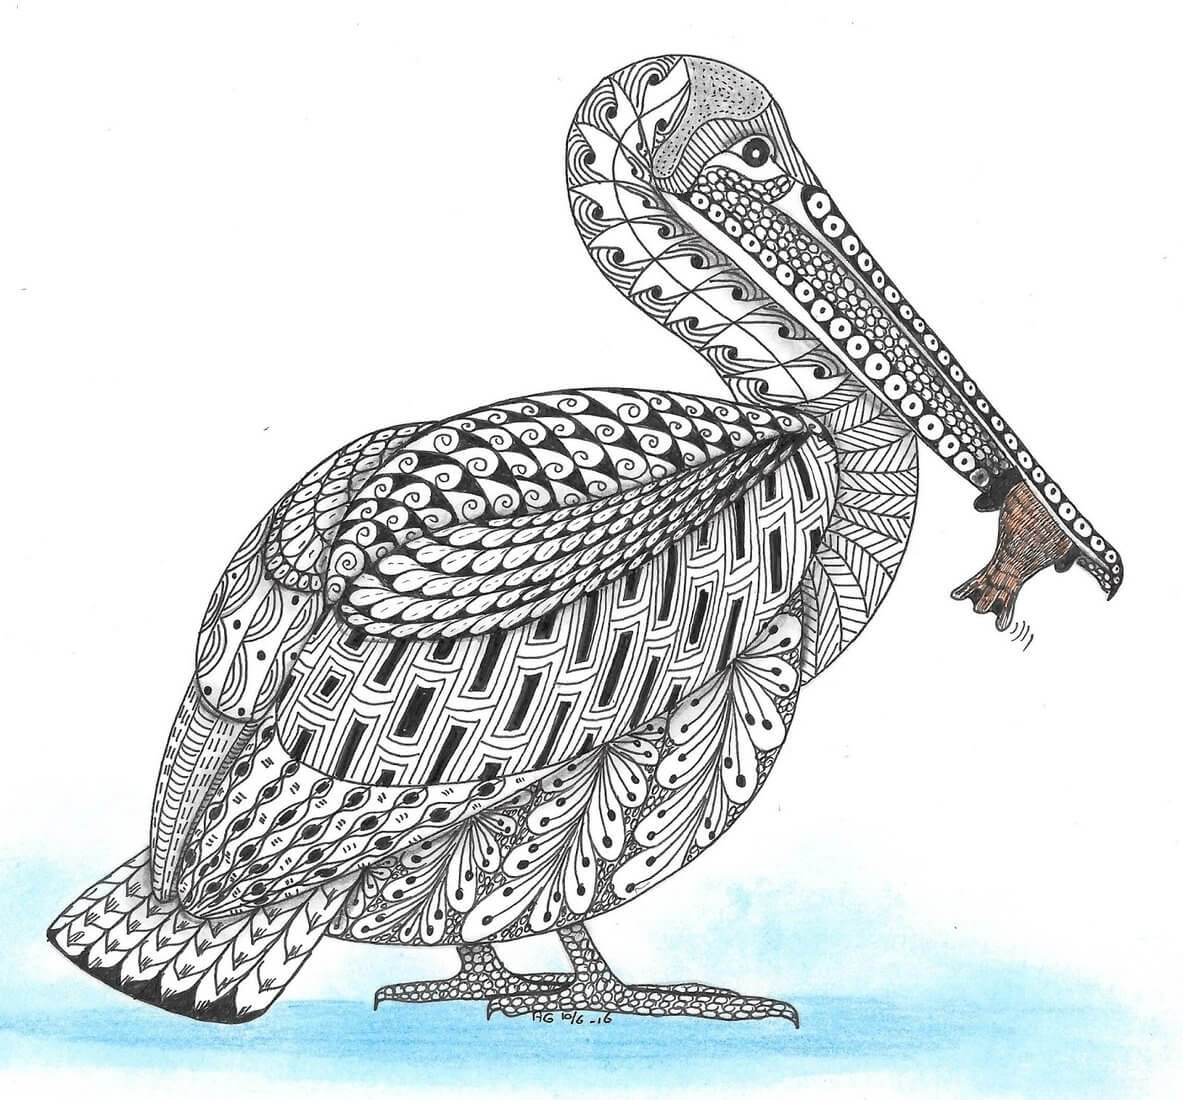 03-Pelican-Adri-van-Garderen-Animals-Given-the-Zentangle-Treatment-www-designstack-co